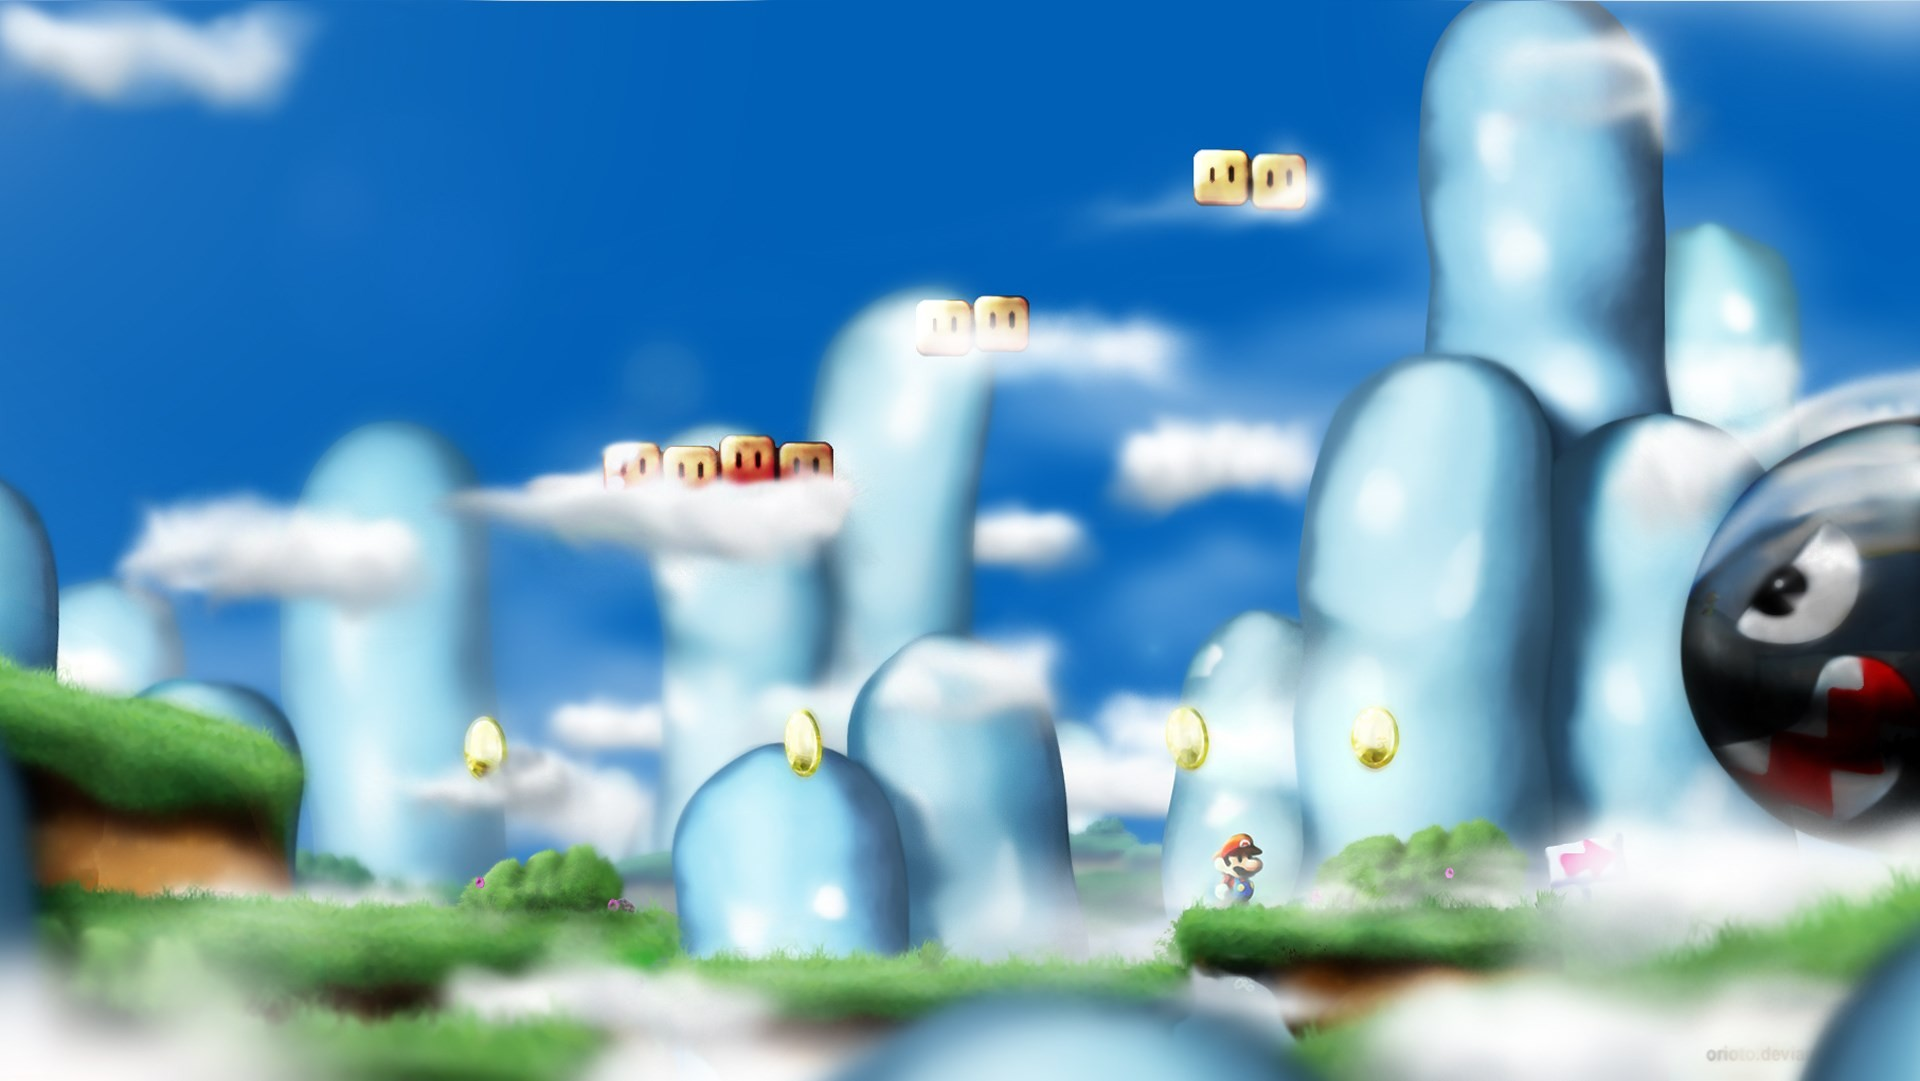 Ghost House Wallpaper Hd 3d Super Mario World Background 183 ① Download Free Beautiful